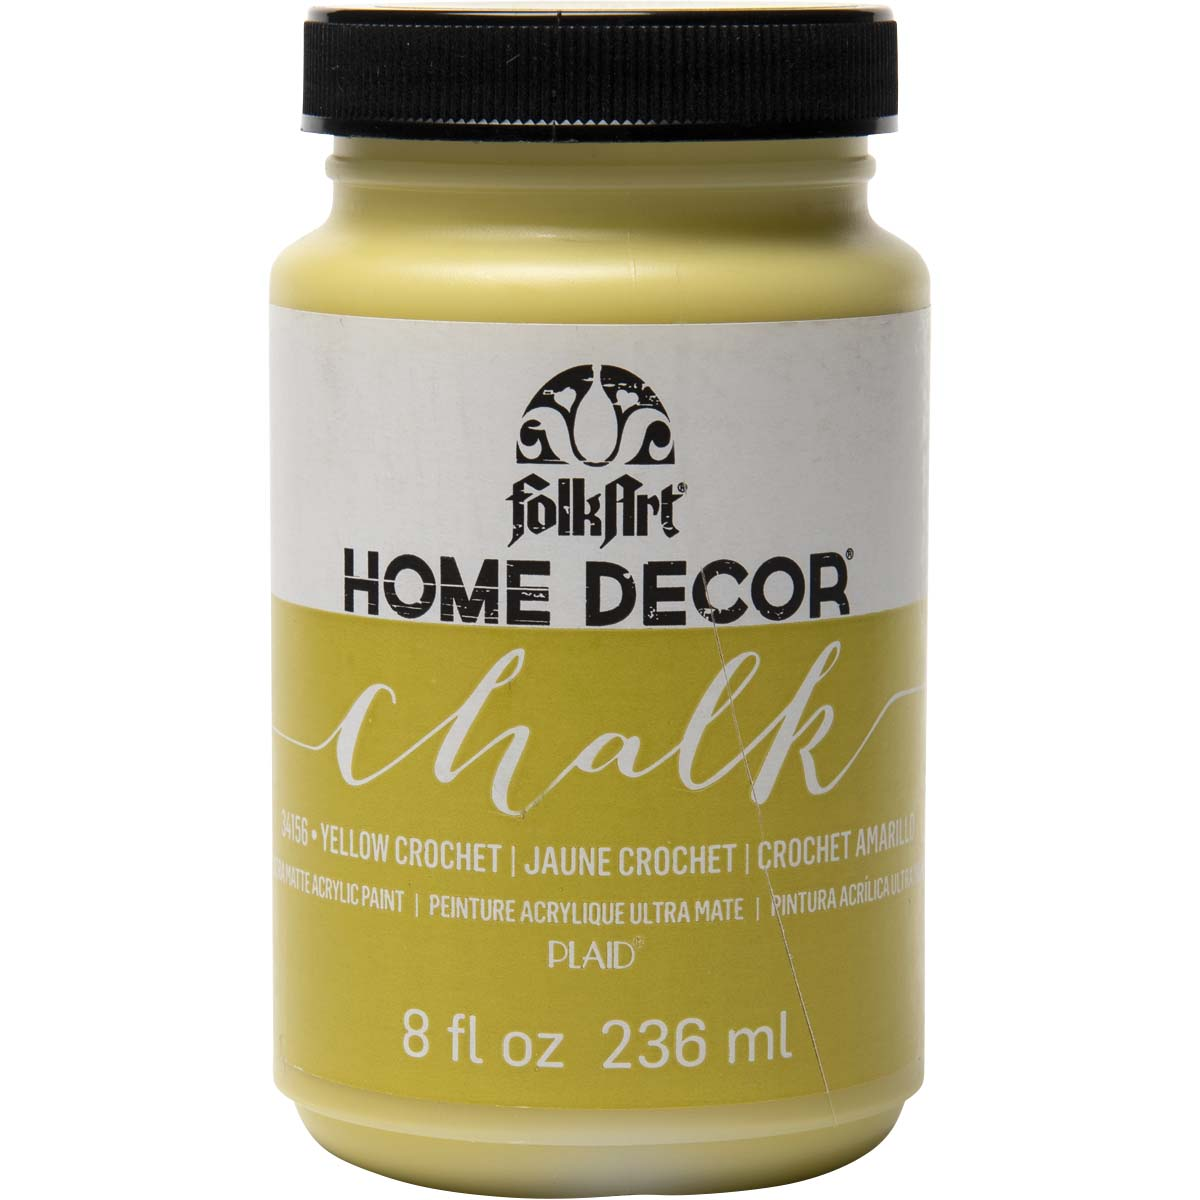 FolkArt ® Home Decor™ Chalk - Yellow Crochet, 8 oz. - 34156